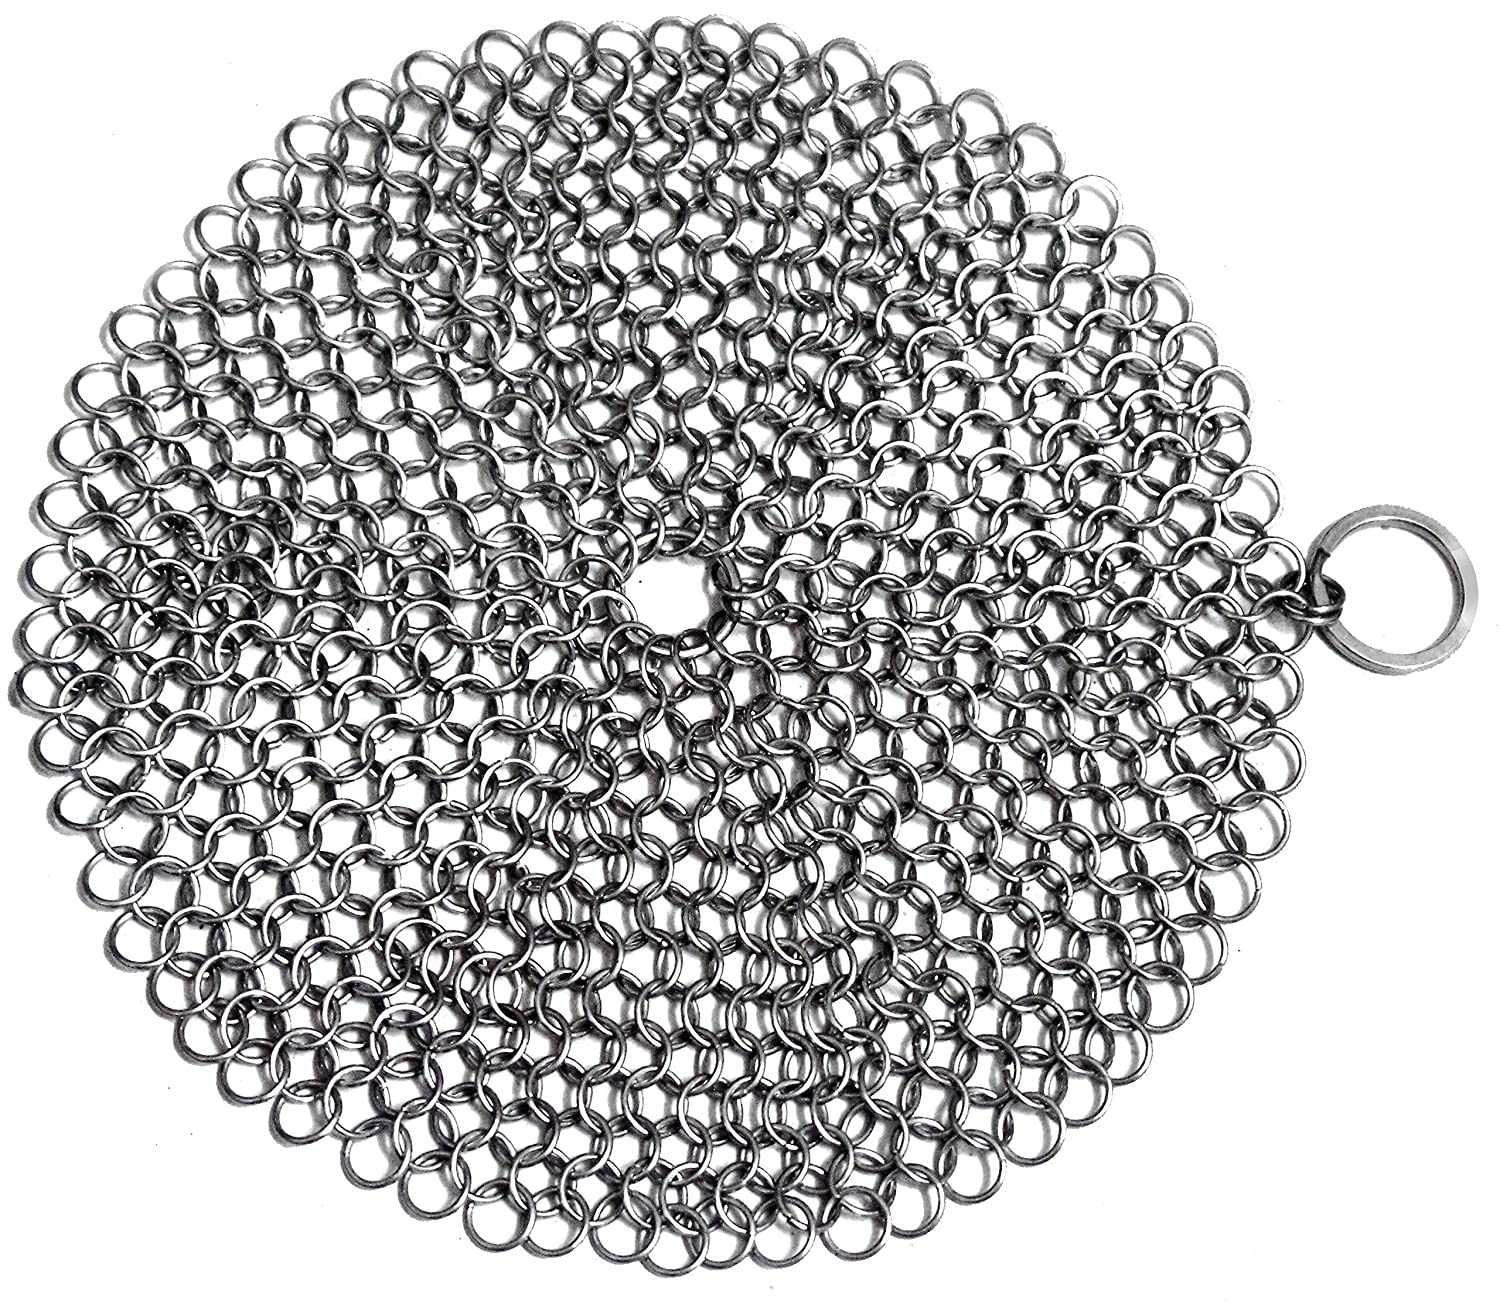 "Nicetar Cast Iron Cleaner Skillet Chainmail Scrubber Premium 316 Stainless Steel 7"" Round"